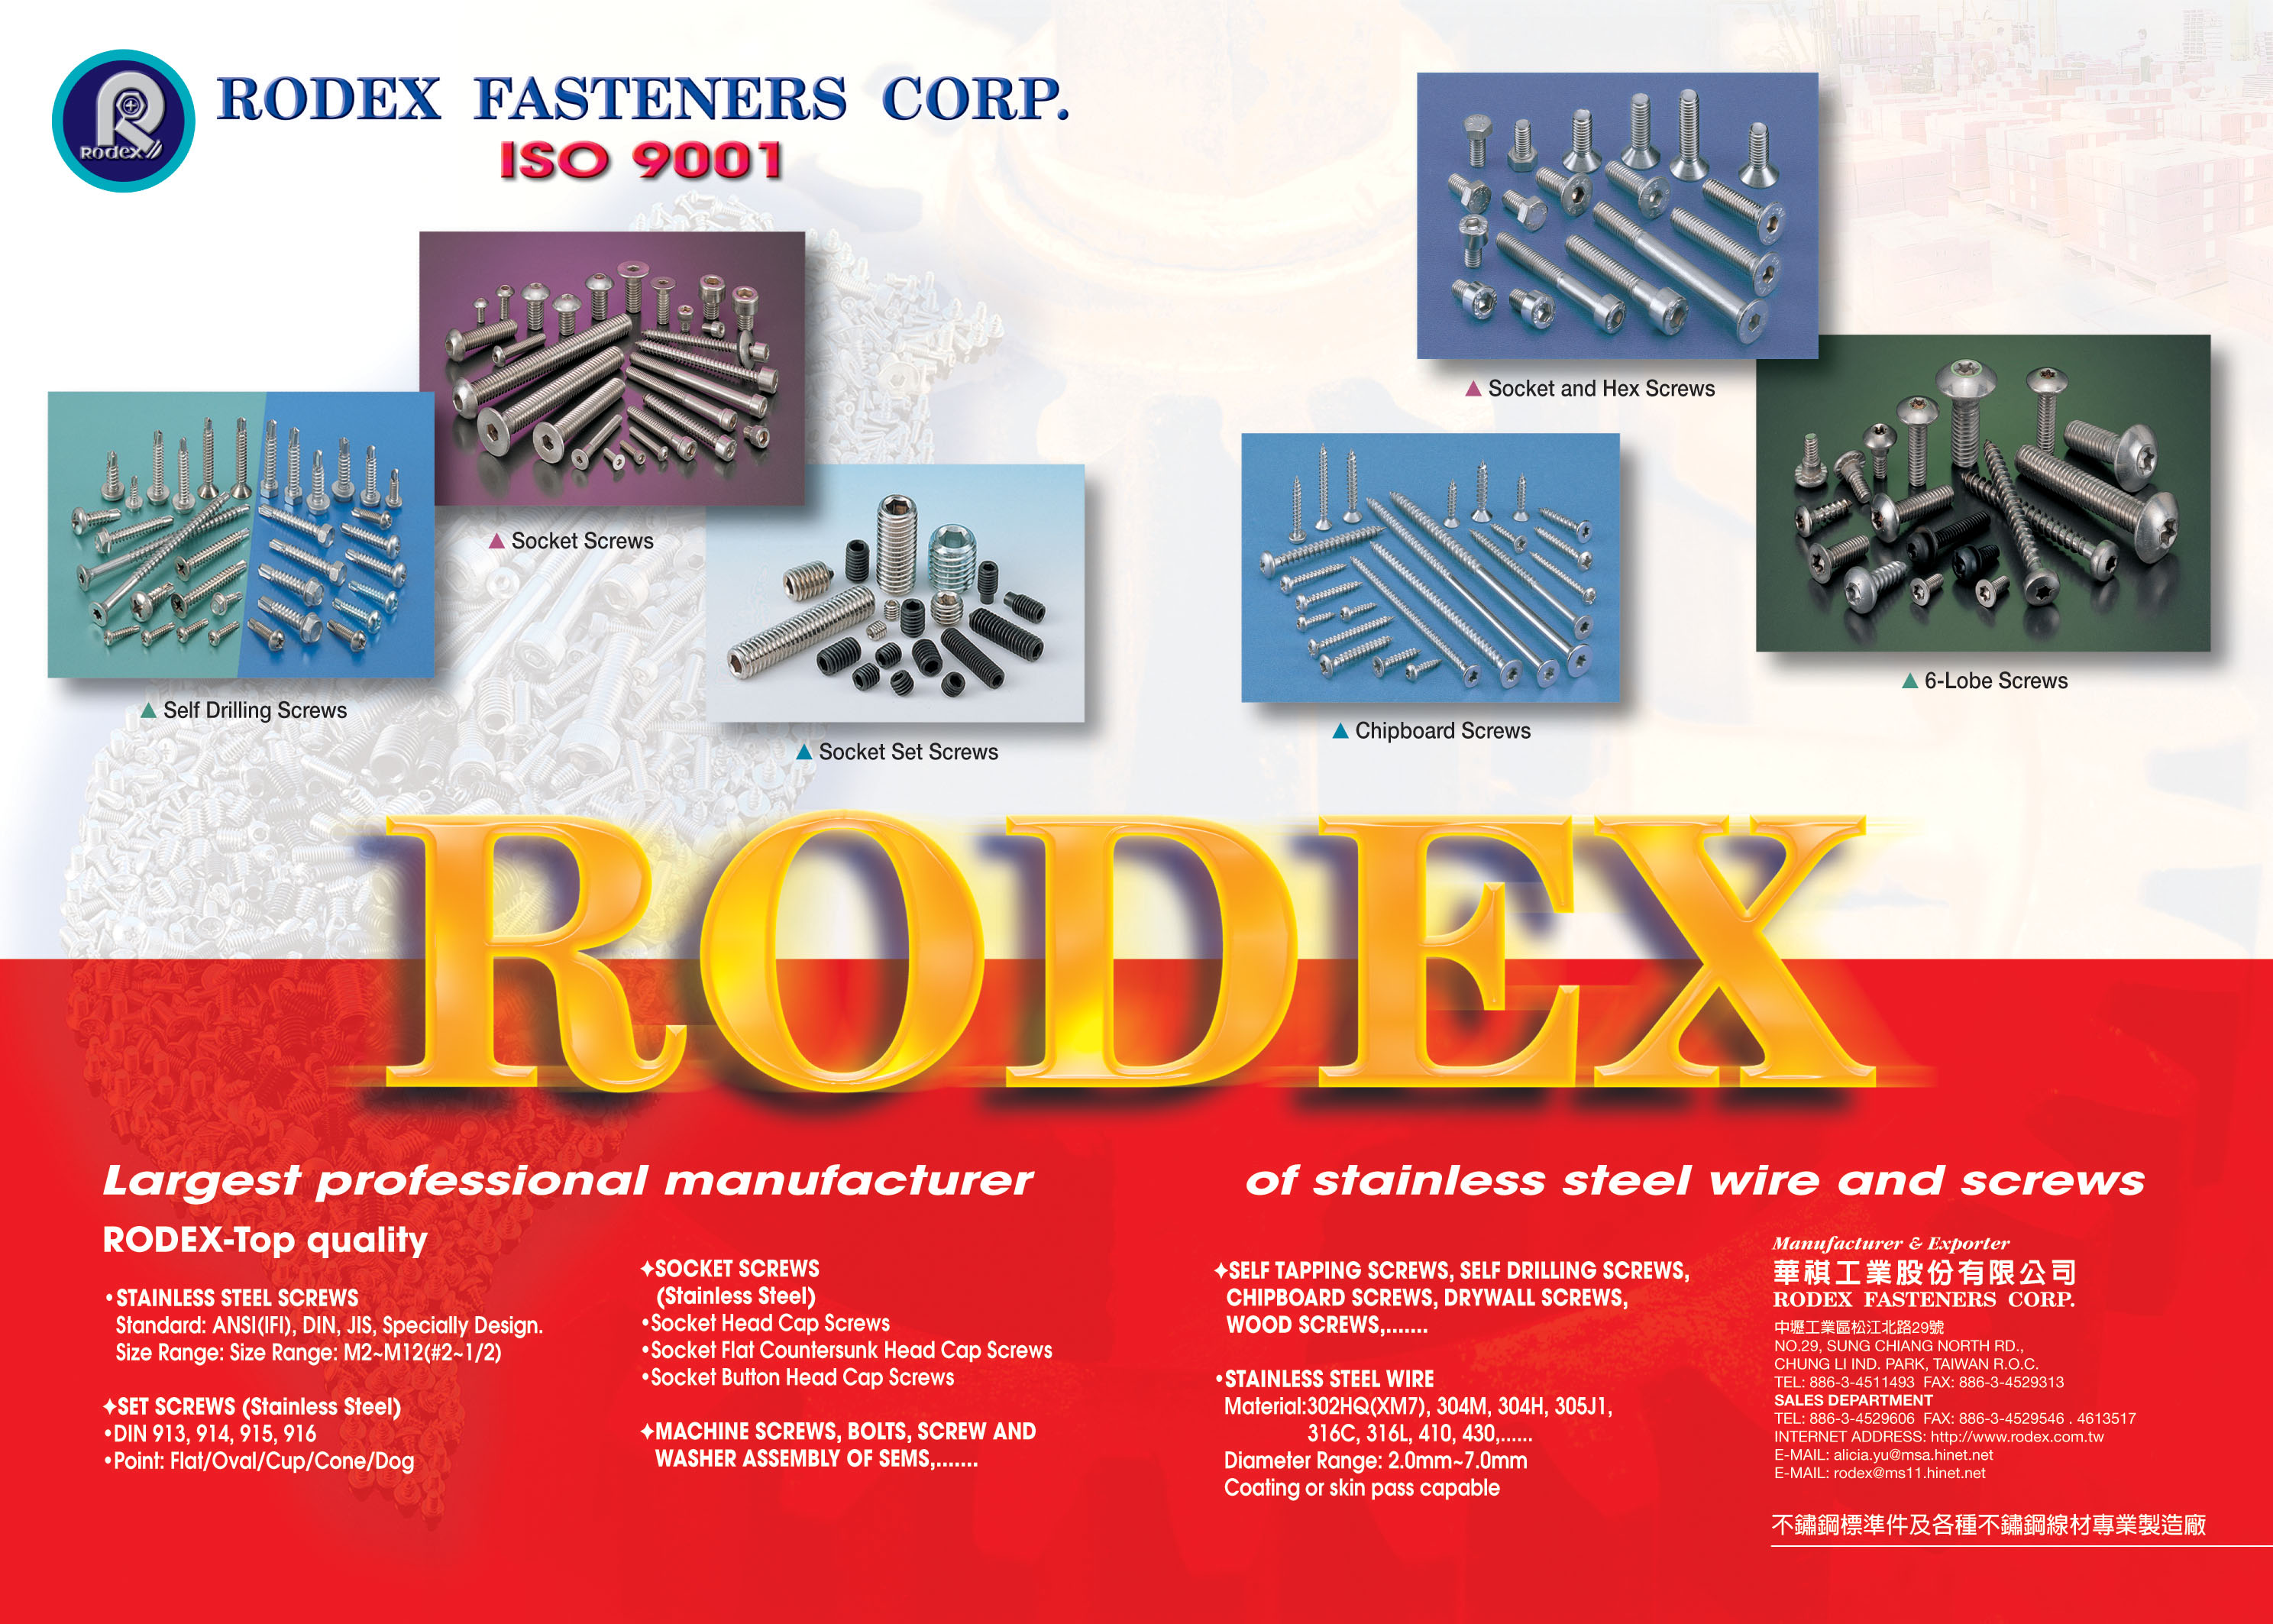 RODEX FASTENERS CORP. Online Catalogues